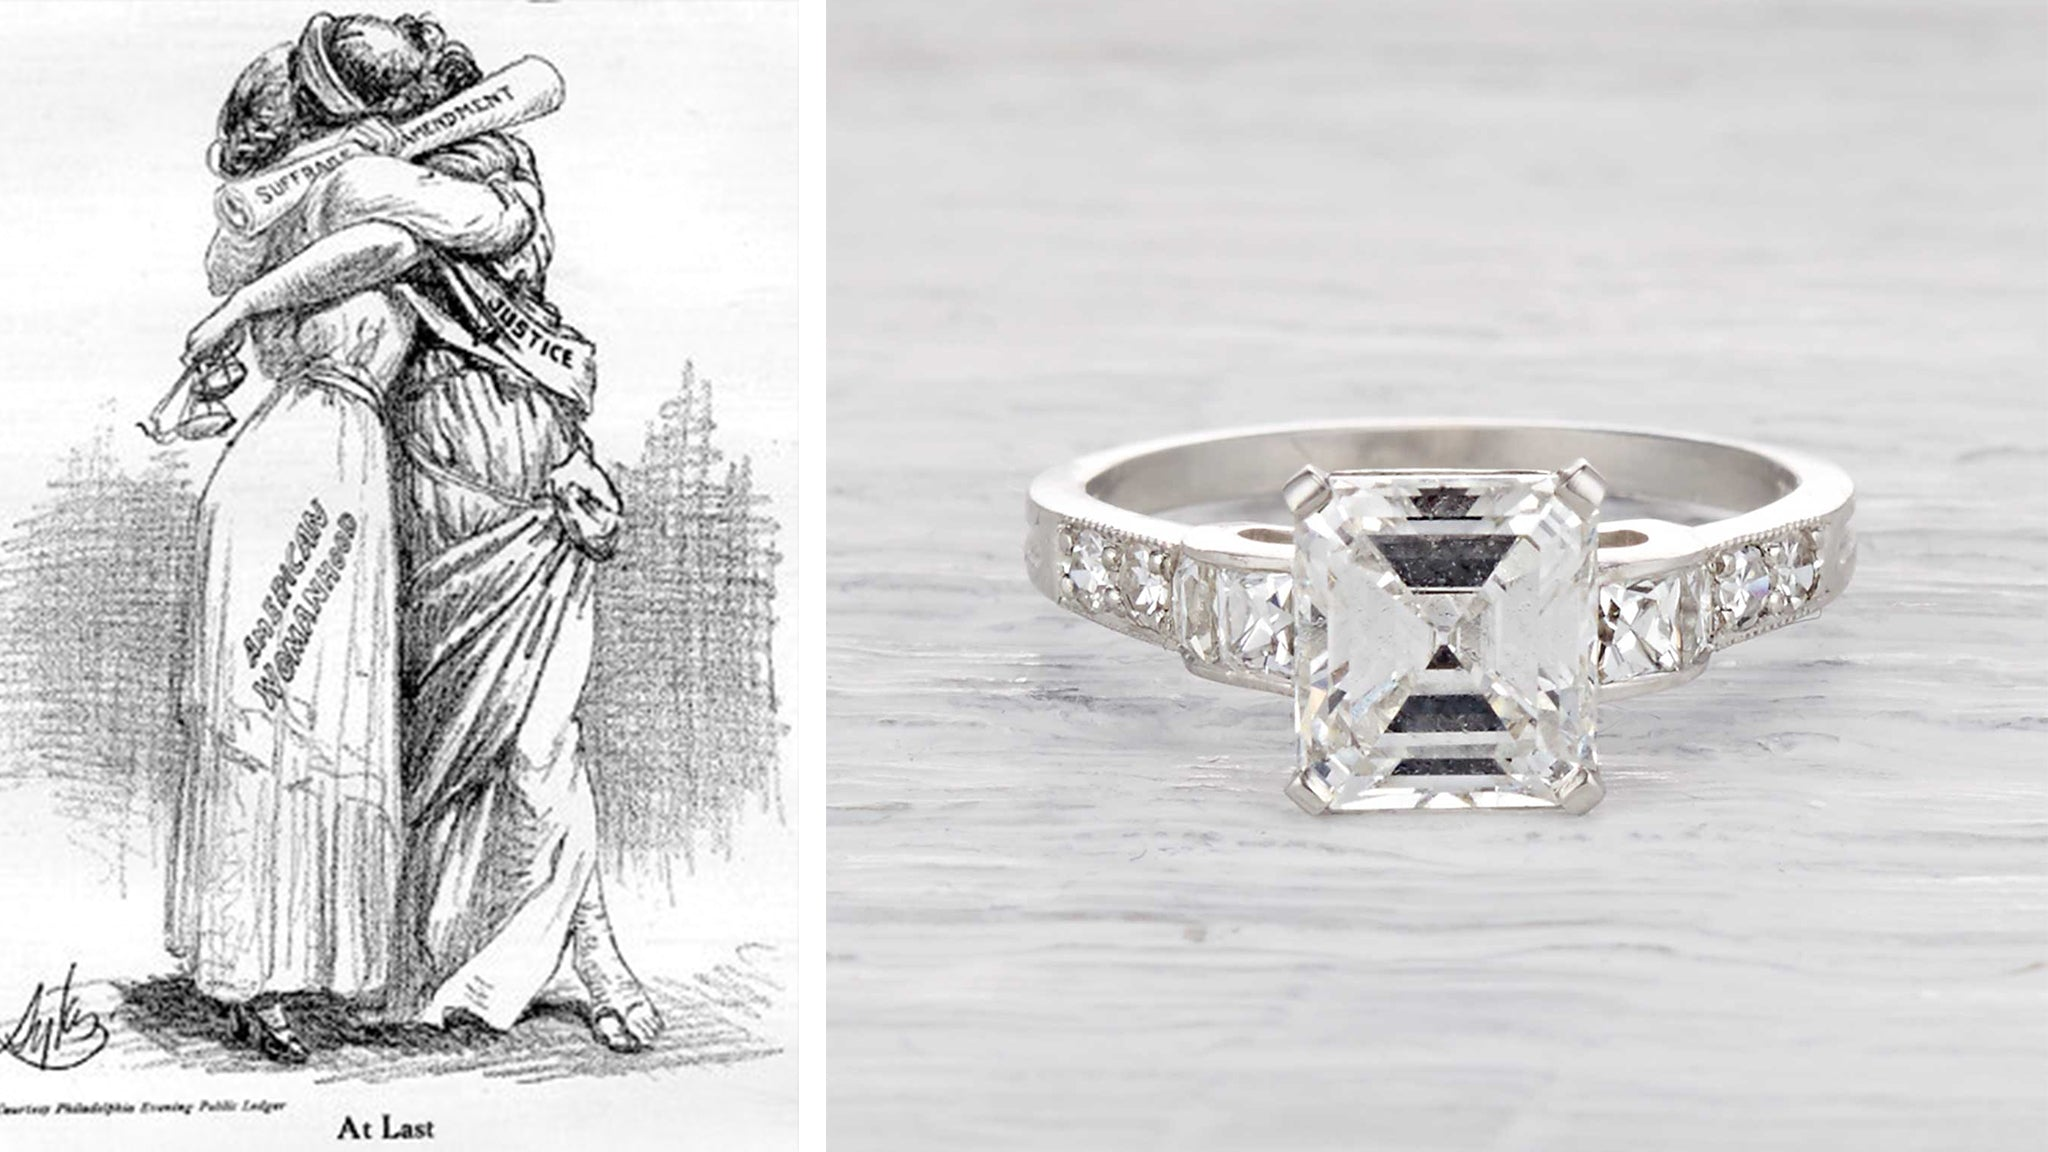 Art Deco Ring Worn by Woman in the 1920s